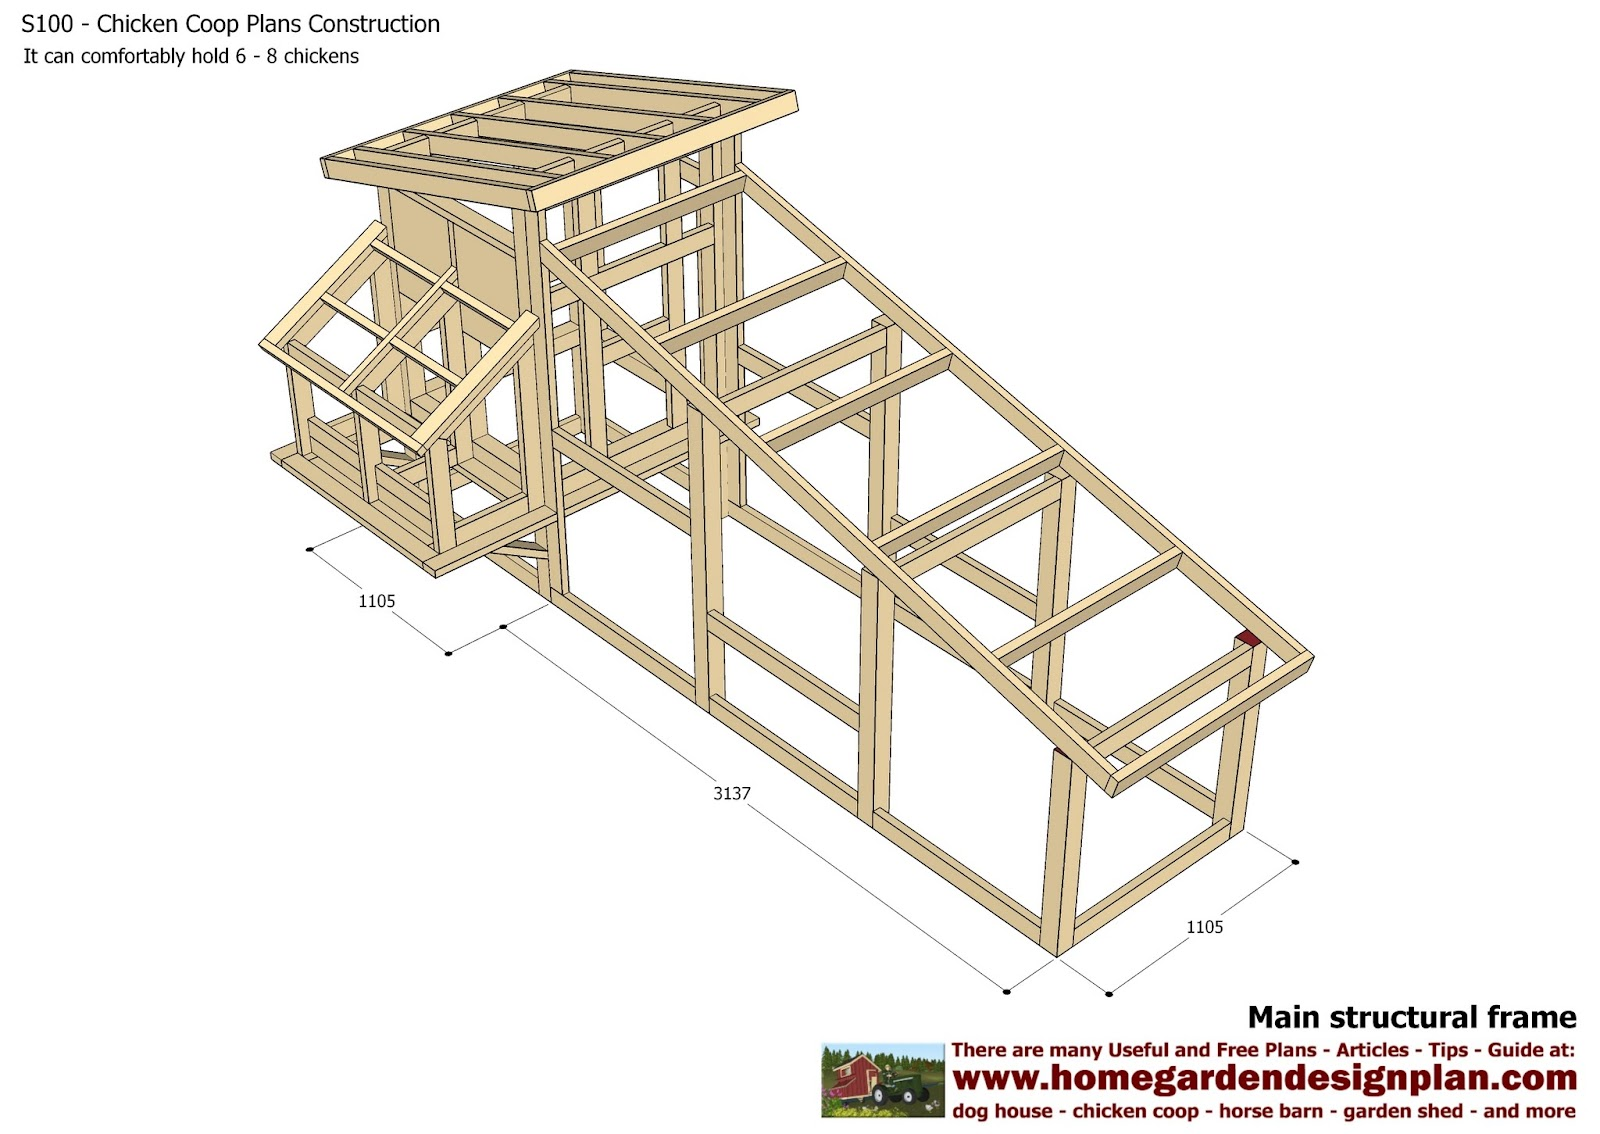 Home garden plans s100 chicken coop plans construction for A frame chicken coup